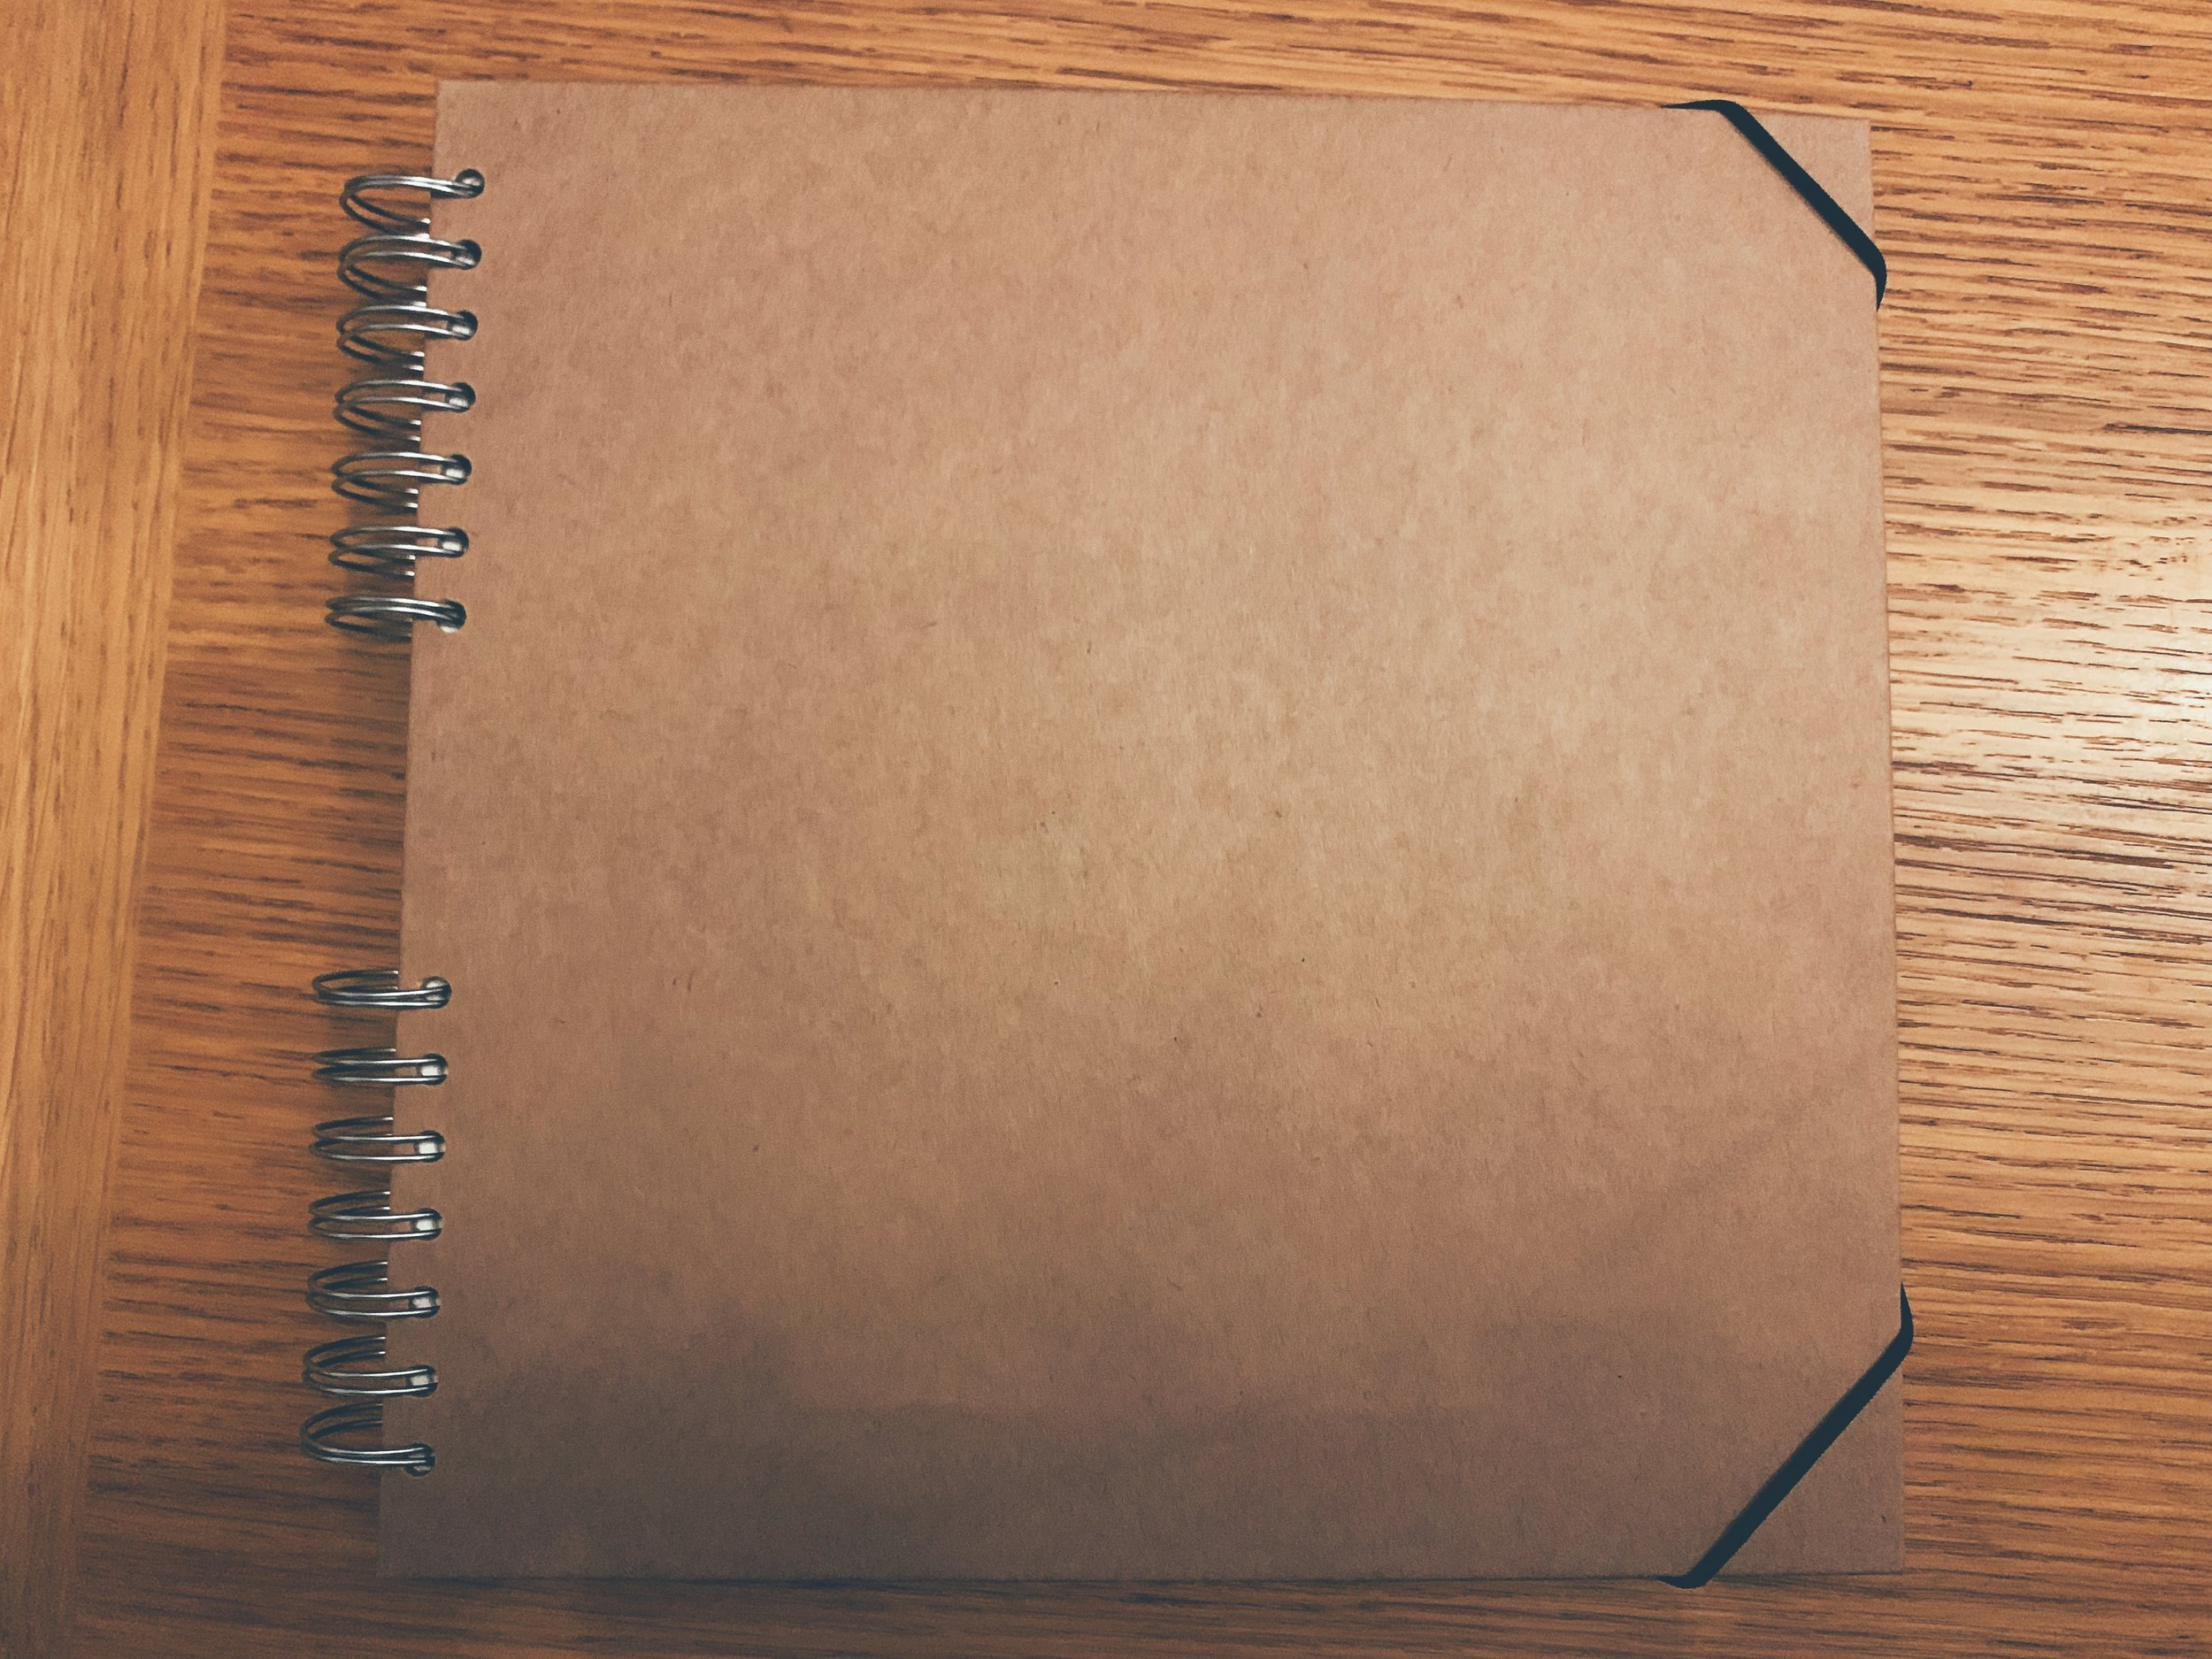 Fresh, untouched scrapbook…THE DREAM.